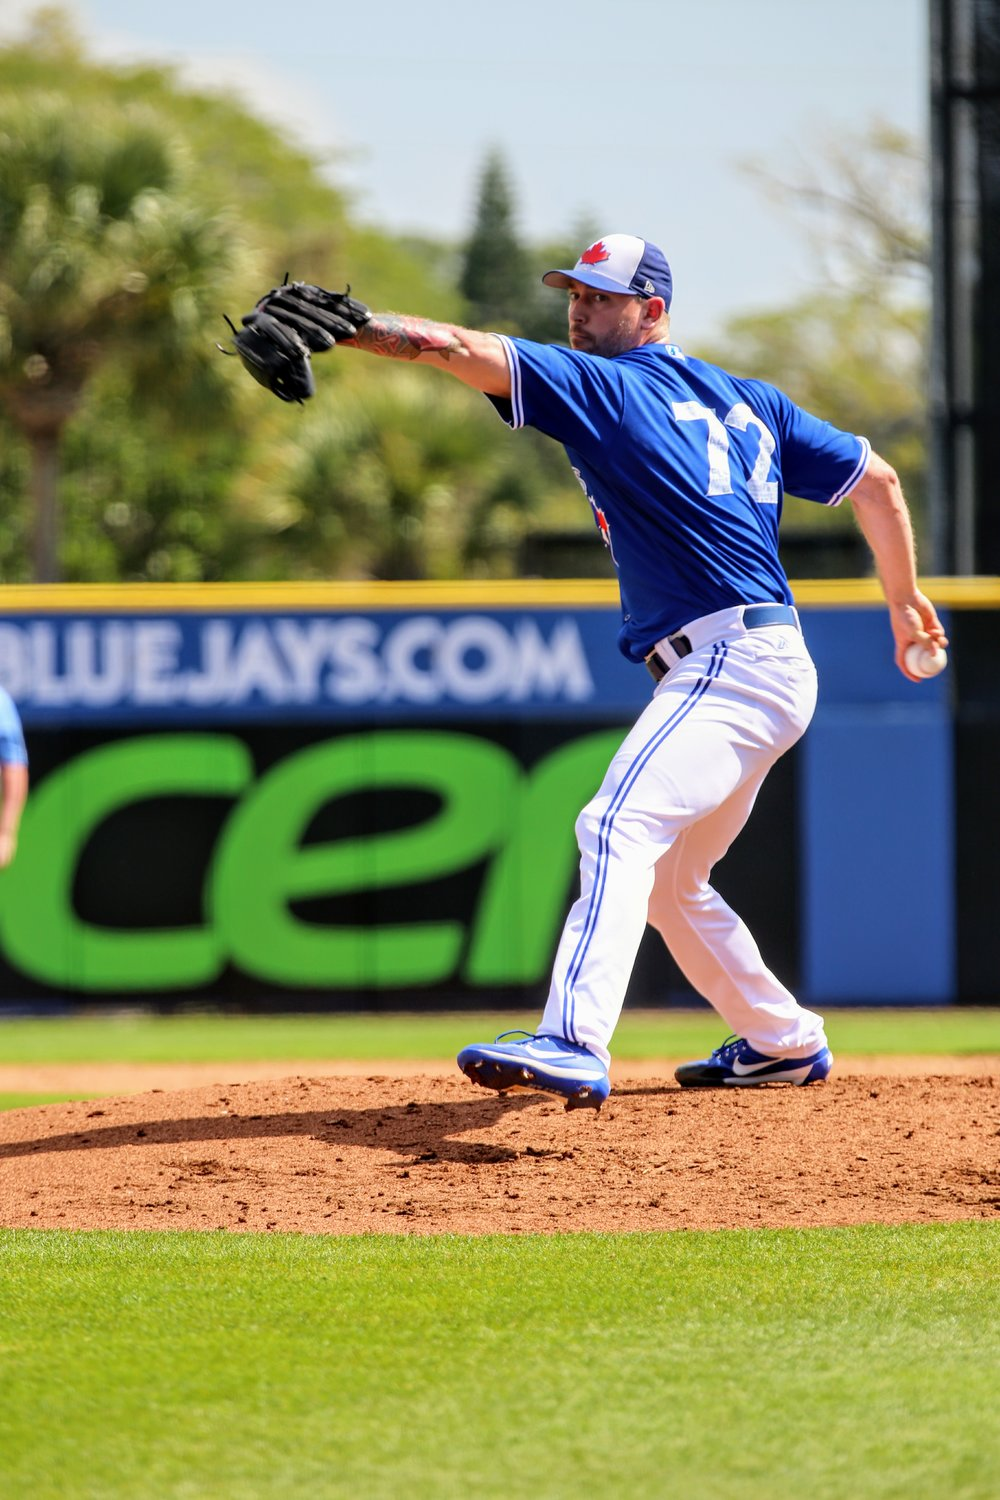 Right-hander John Axford (Port Dover, Ont.) will be in the Toronto Blue Jays' bullpen to open the season. He is one of five Canadians on major league Opening Day rosters. Photo Credit: Amanda Fewer